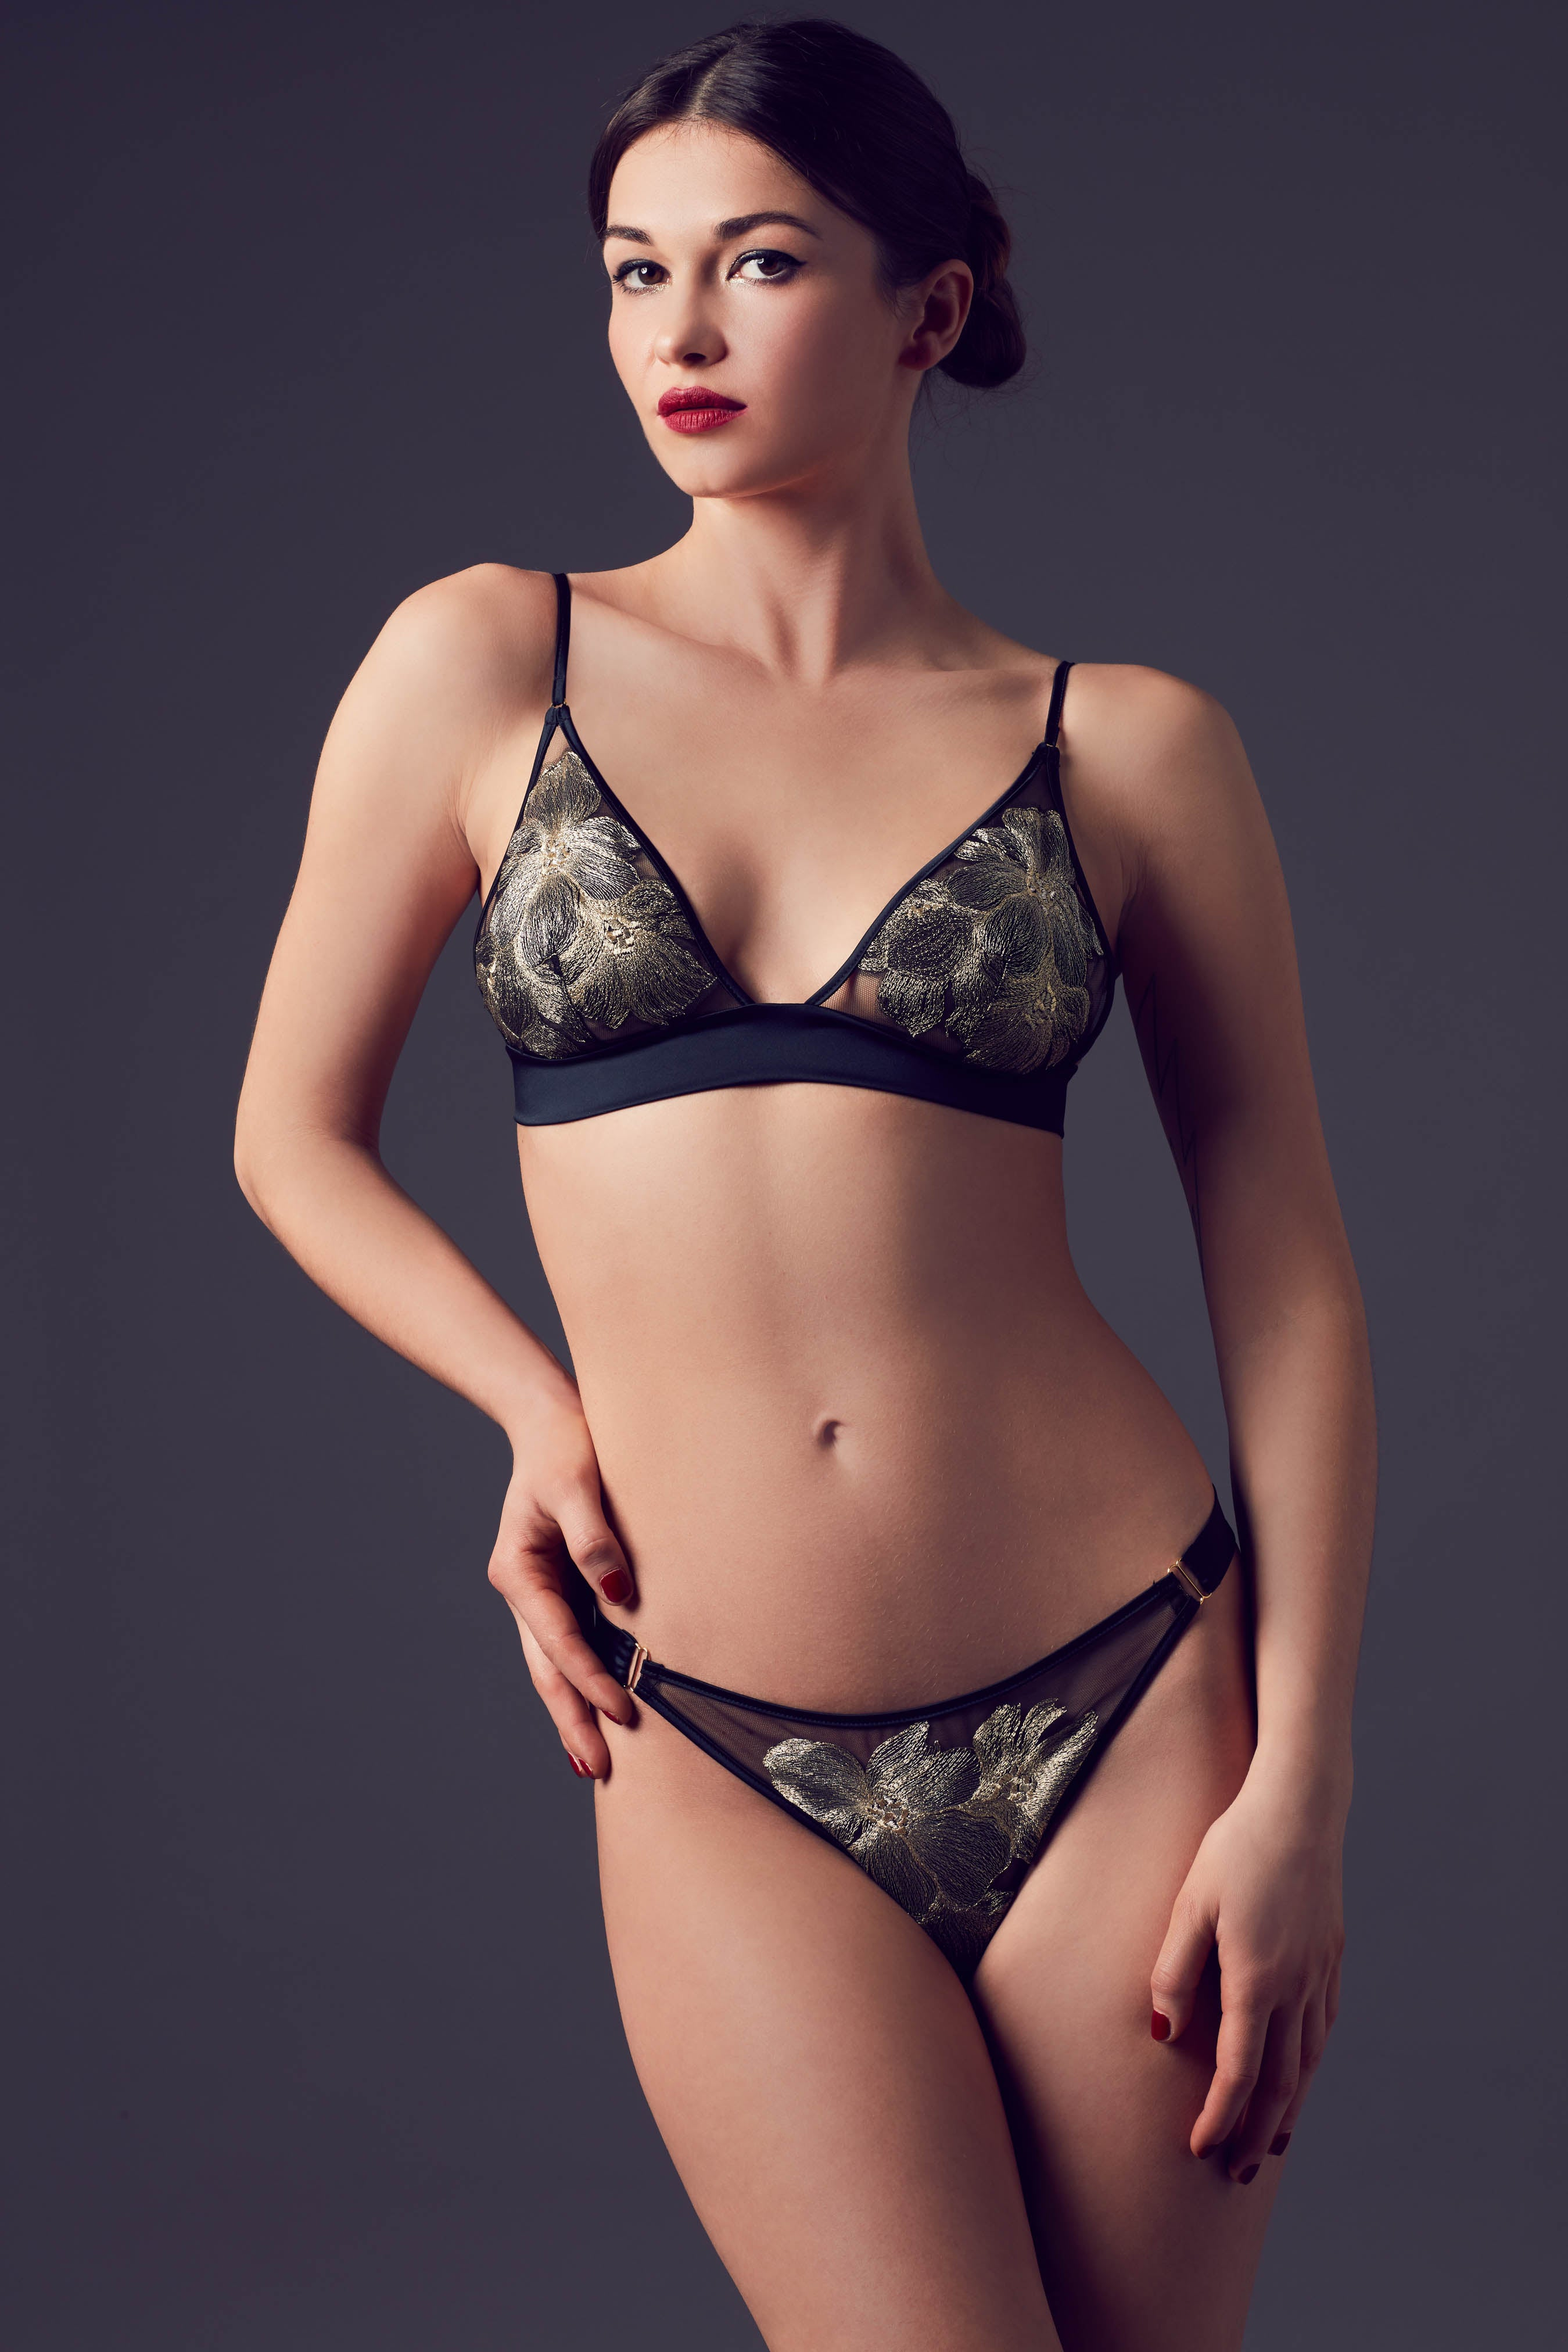 Ayako luxury lingerie set, with black and metallic gold bralette and thong